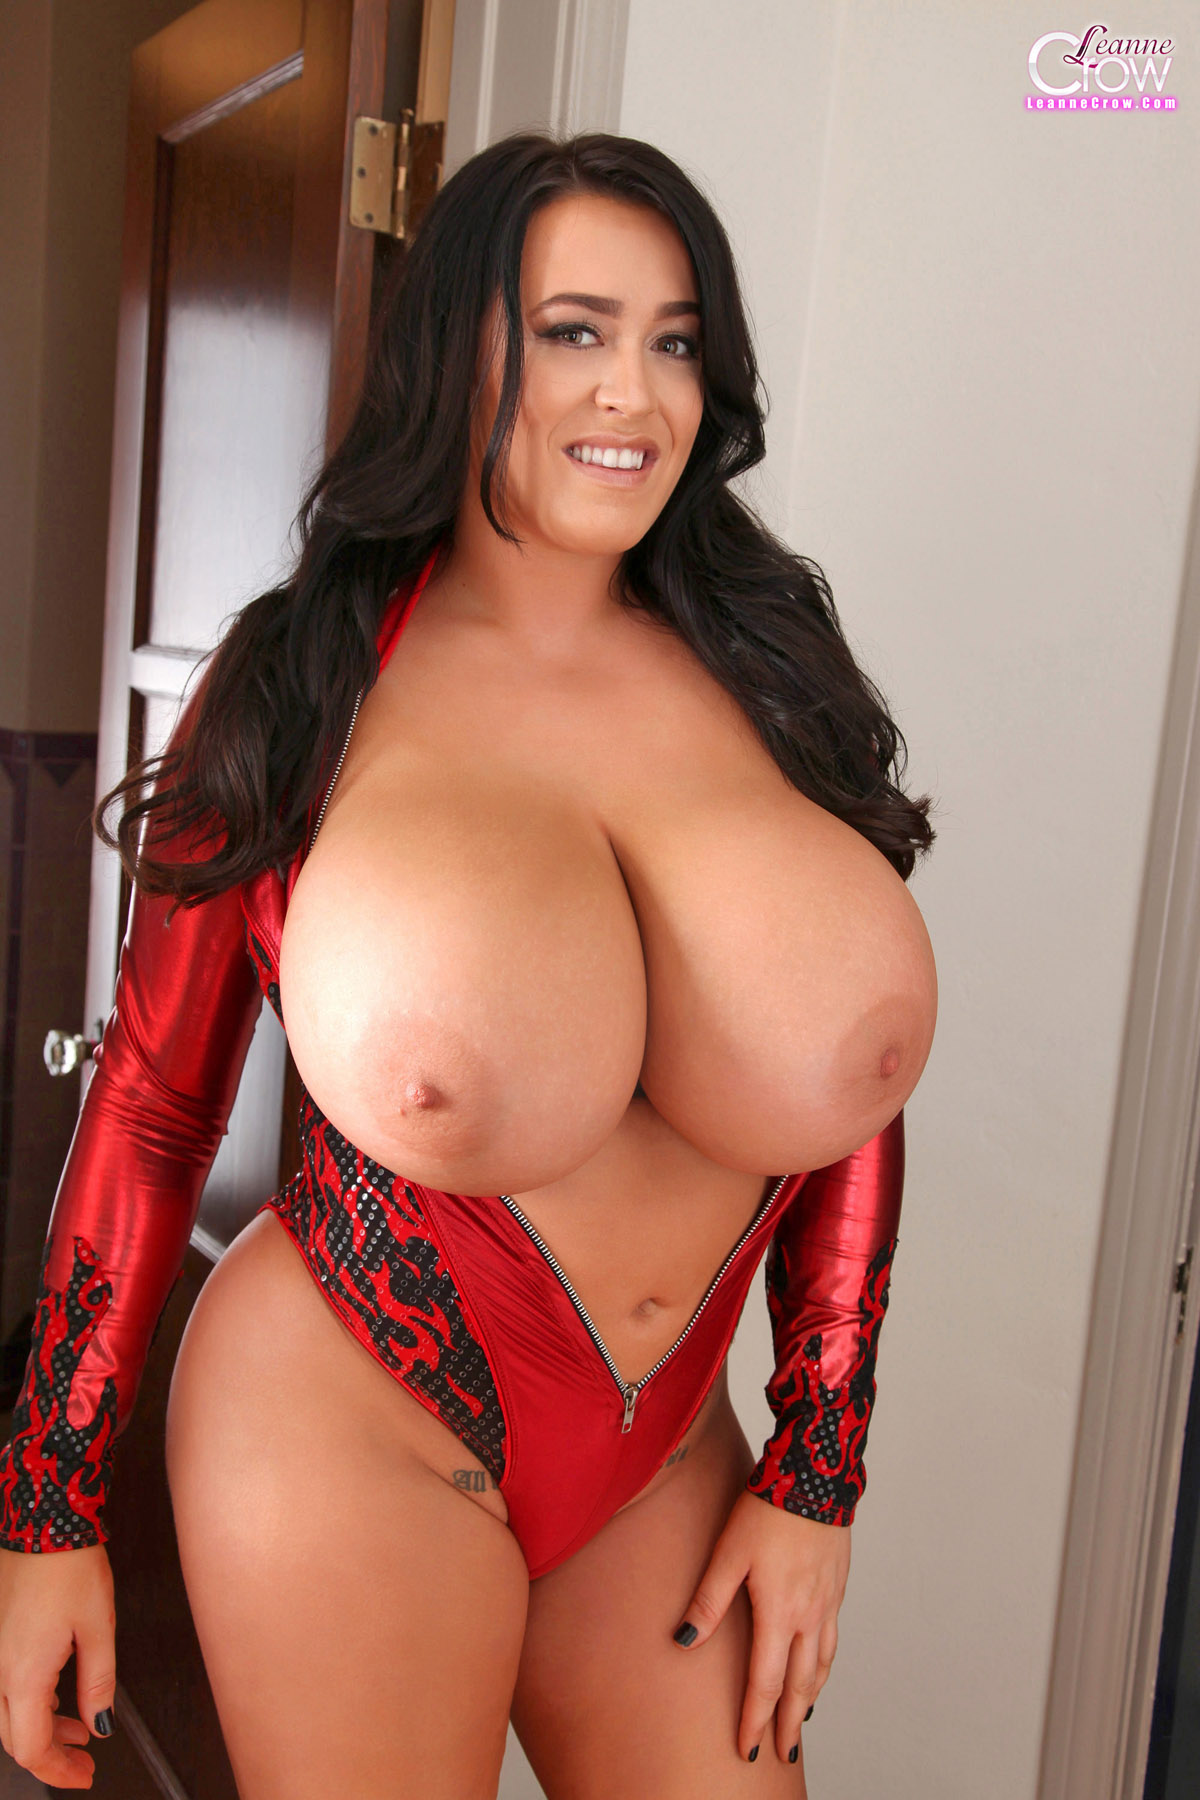 leanne crow pops her top